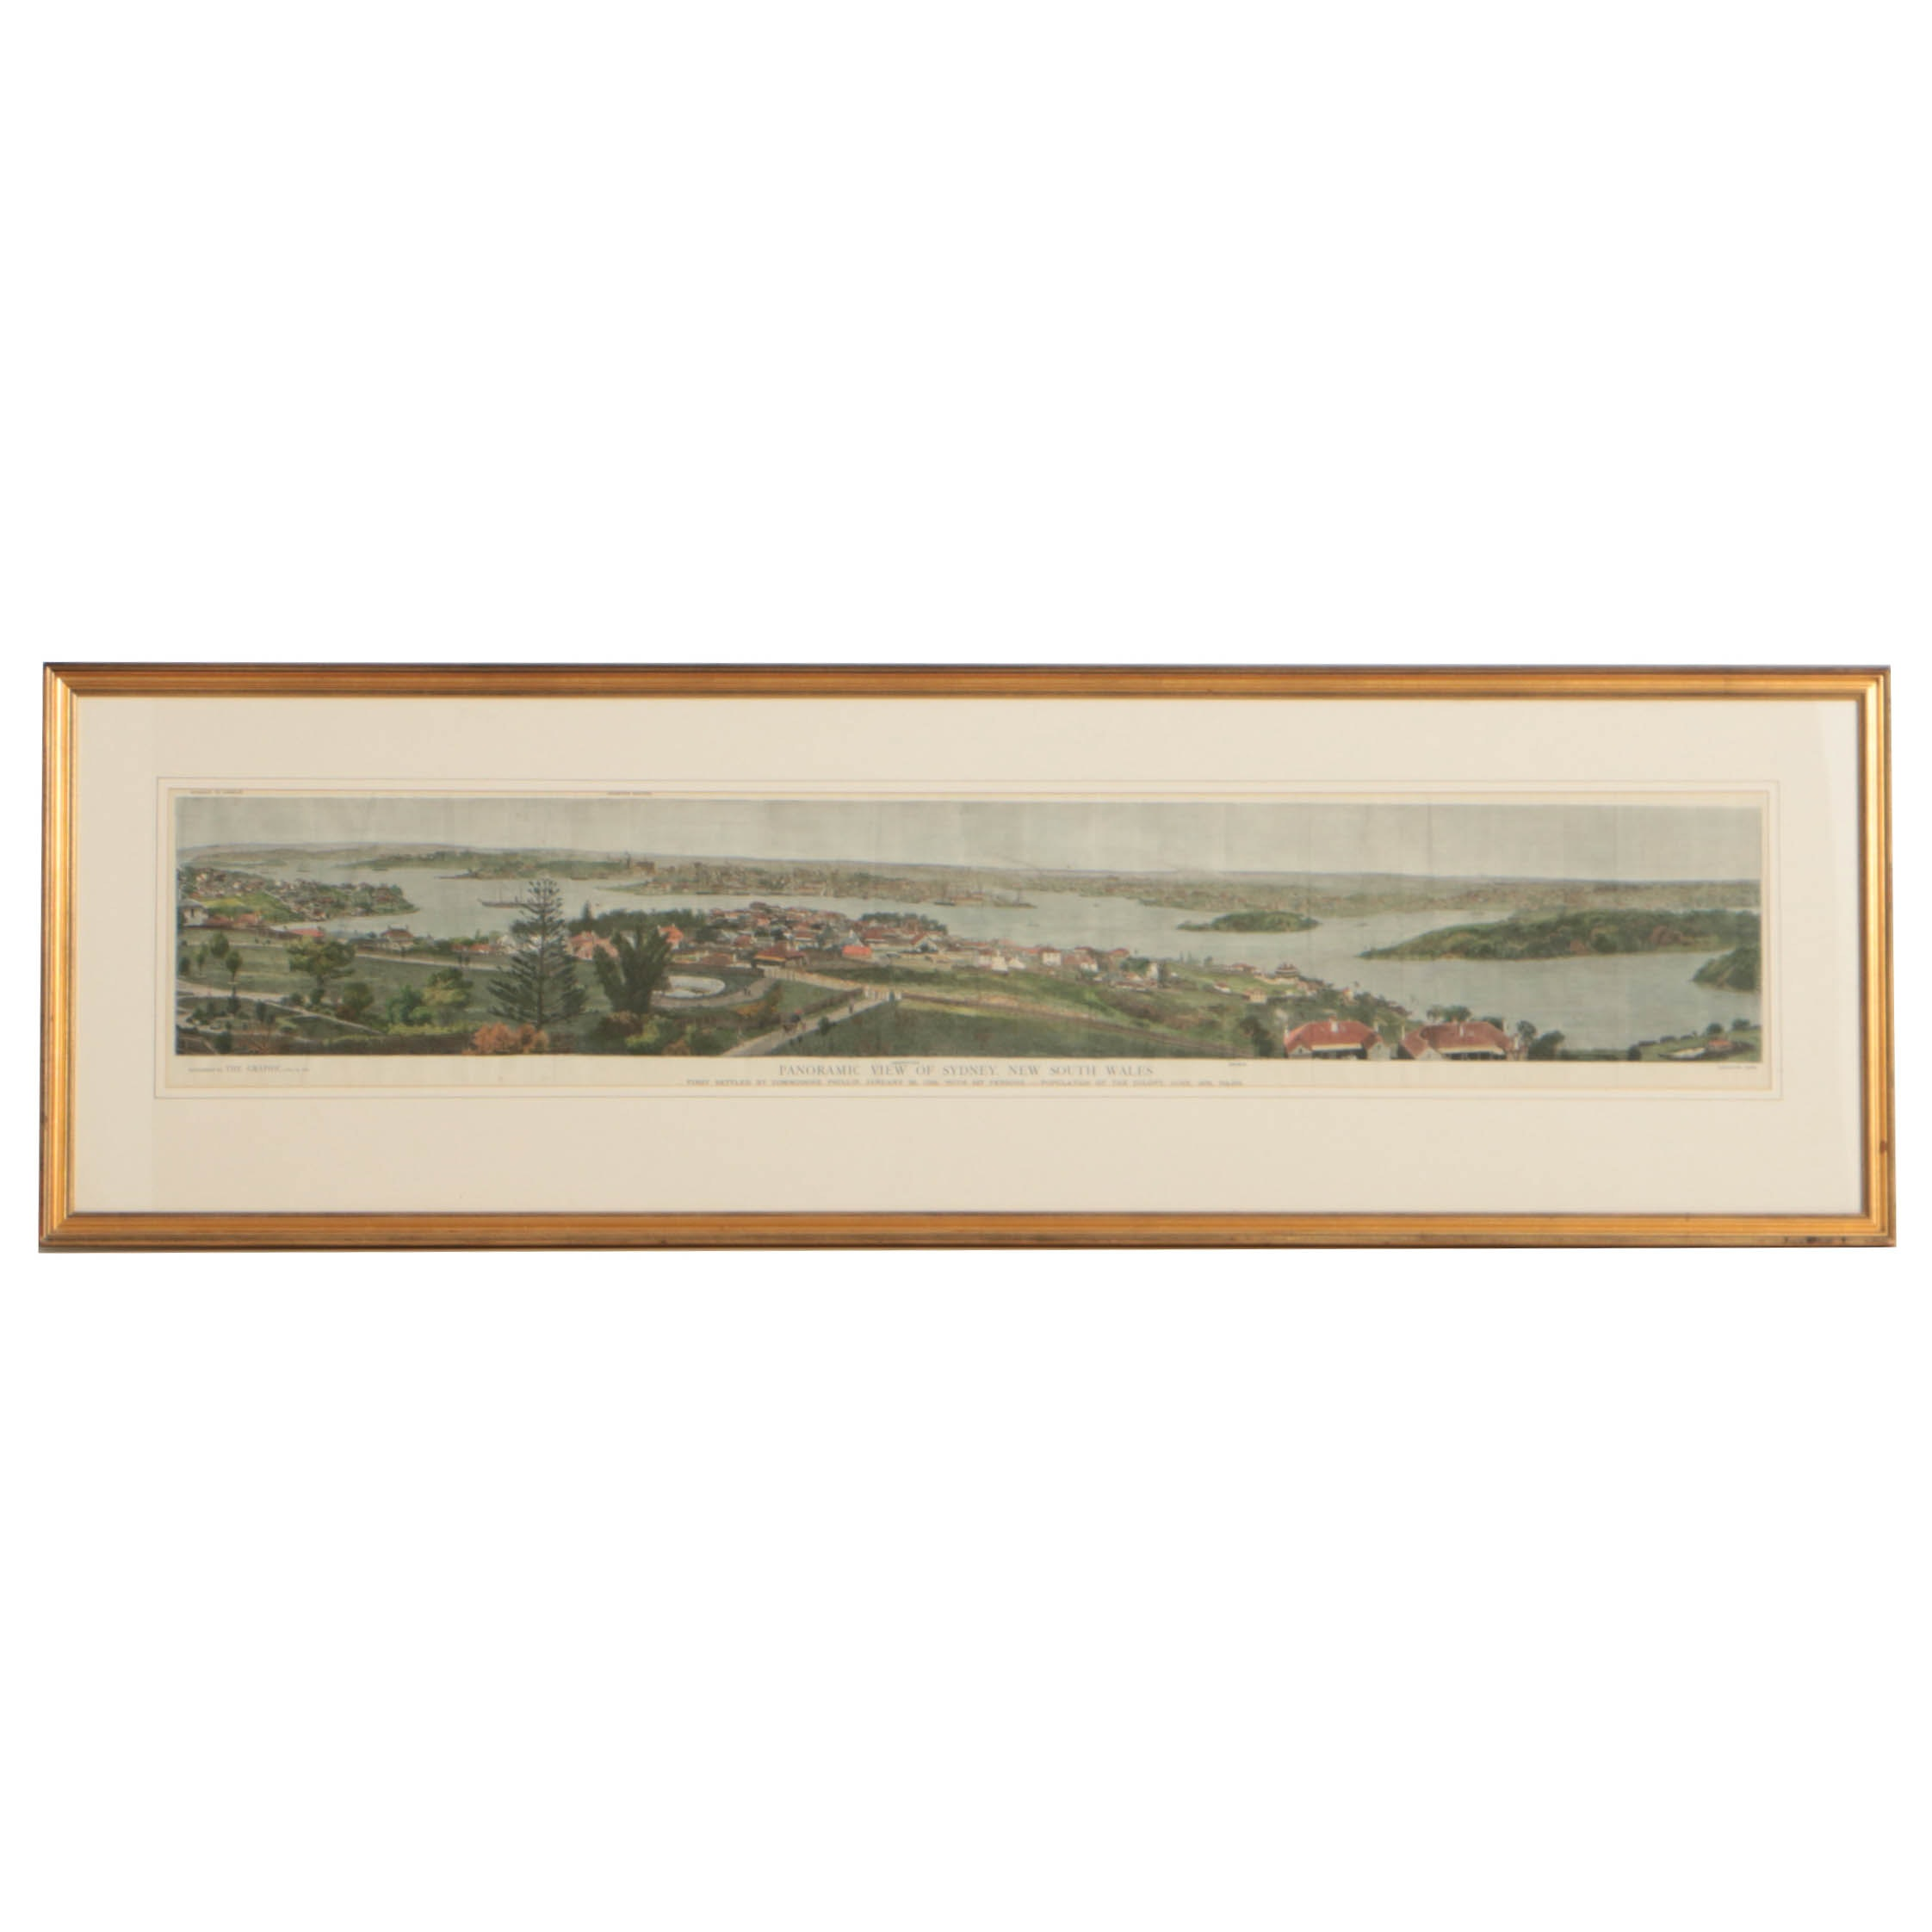 H. Harrall Late 19th Century Wood Engraving of Sydney, New South Wales